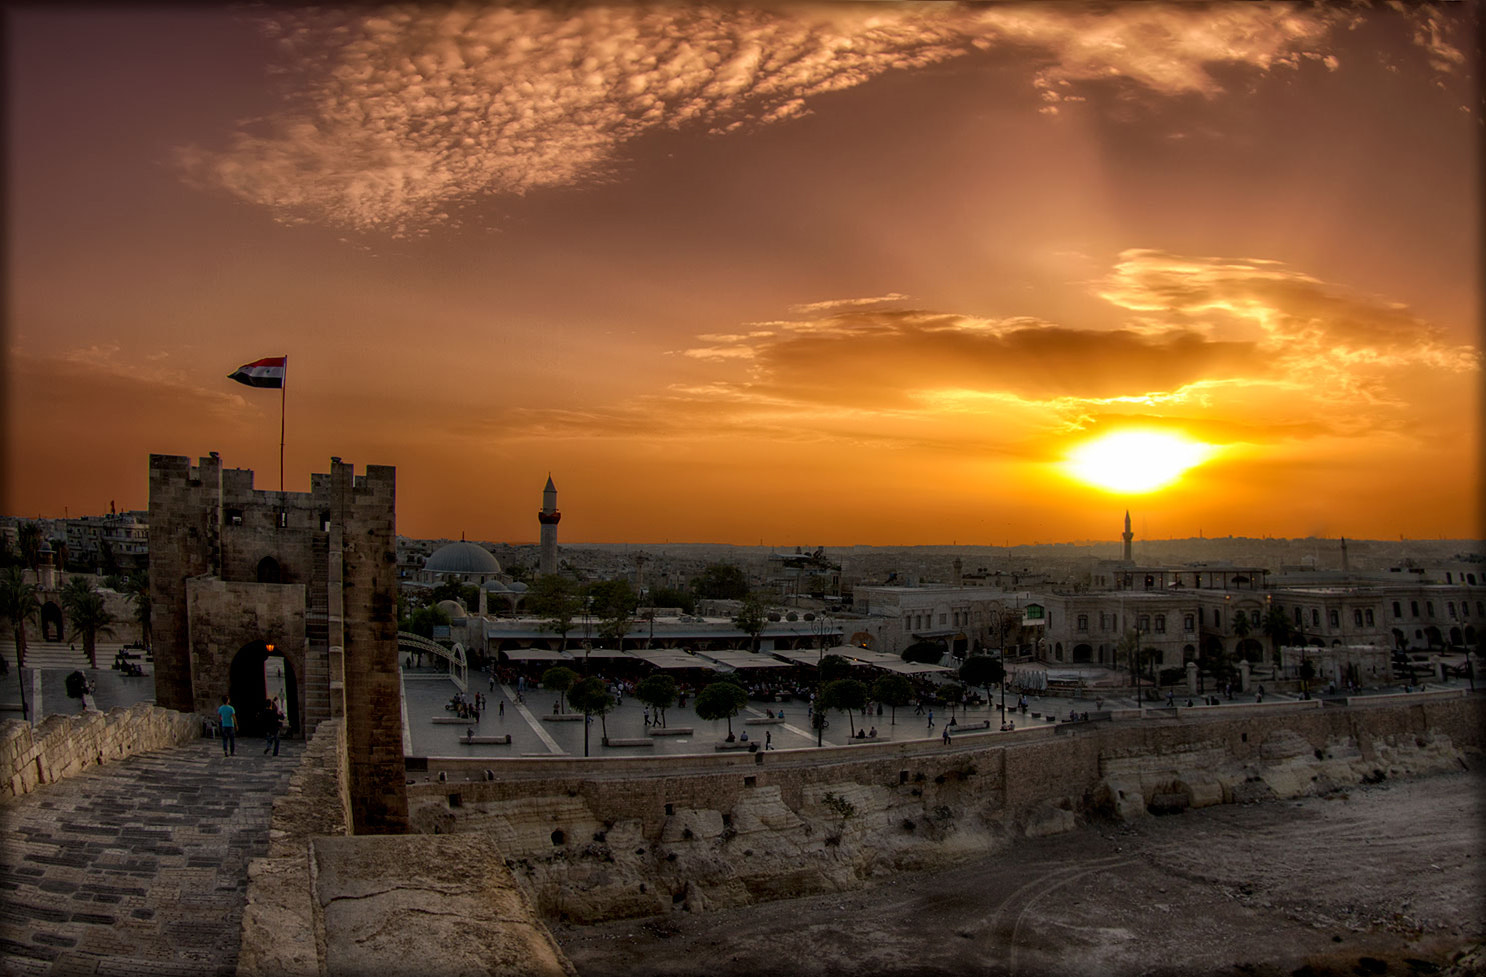 Photograph Aleppo by Pepe Alcaide on 500px